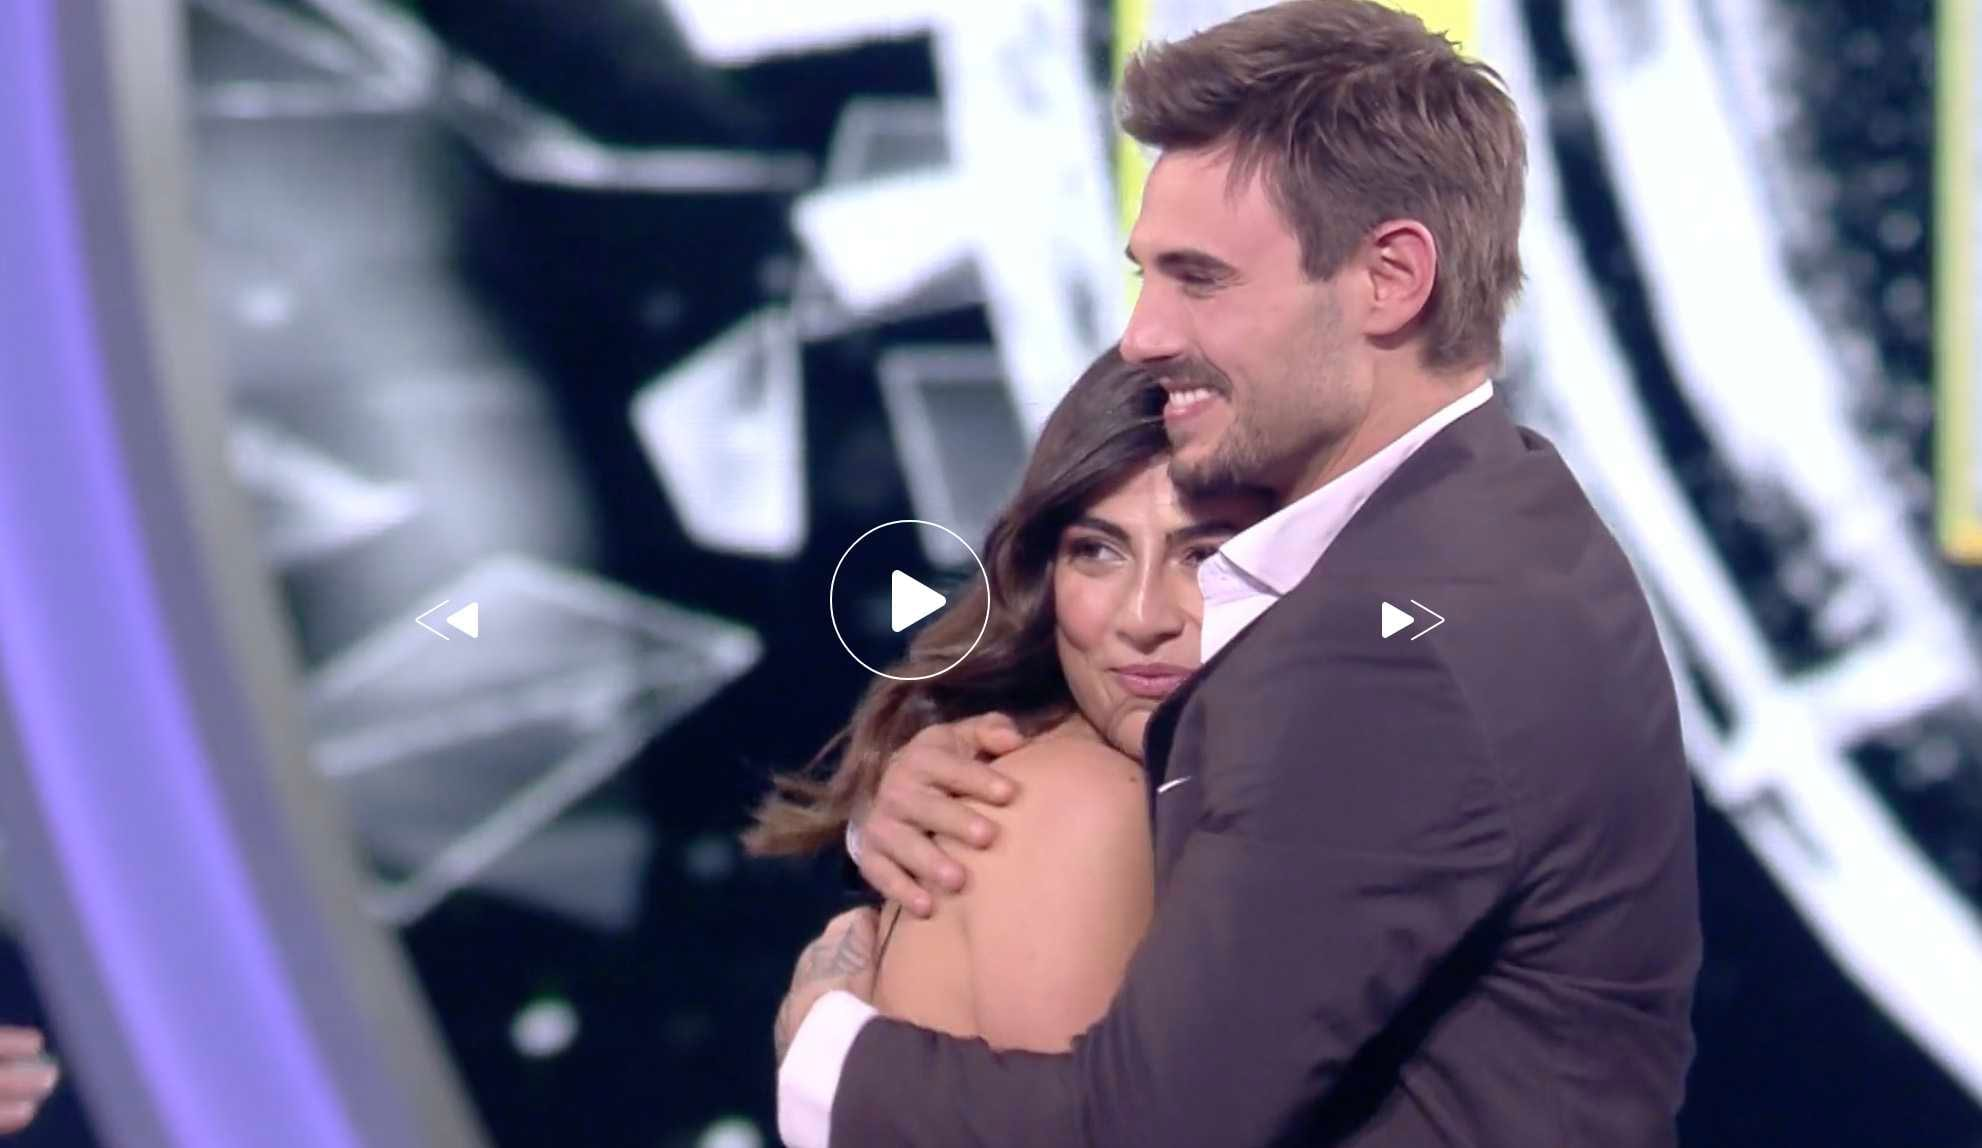 francesco monte giulia salemi video gfvip